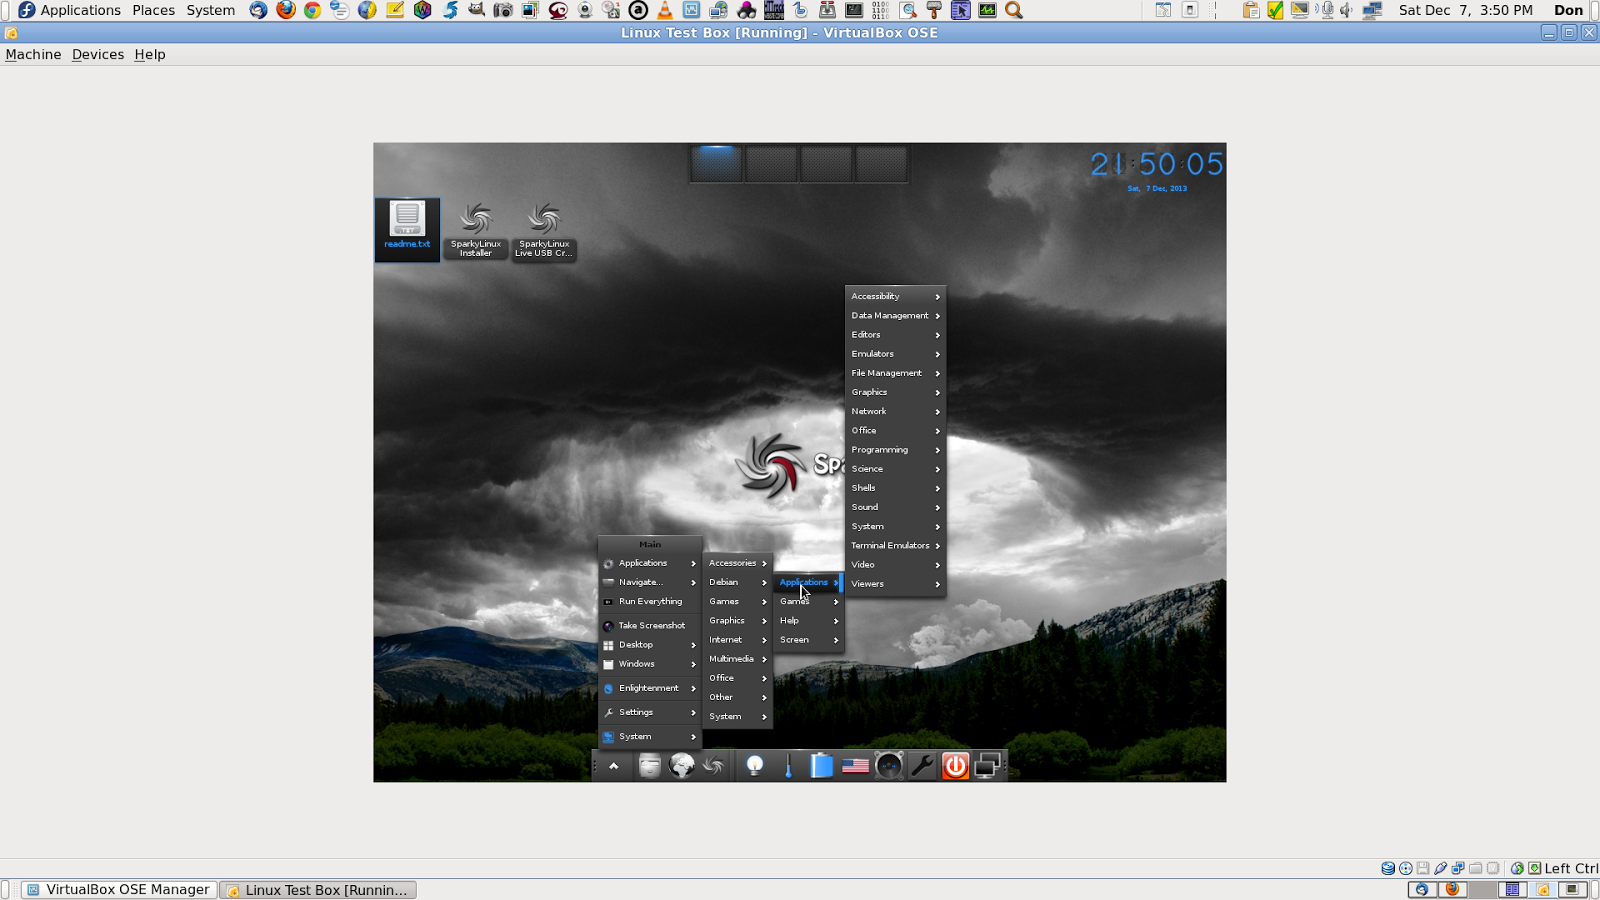 DonsDeals Blog: I'm trying out SparkyLinux, it's based on Debian Testing